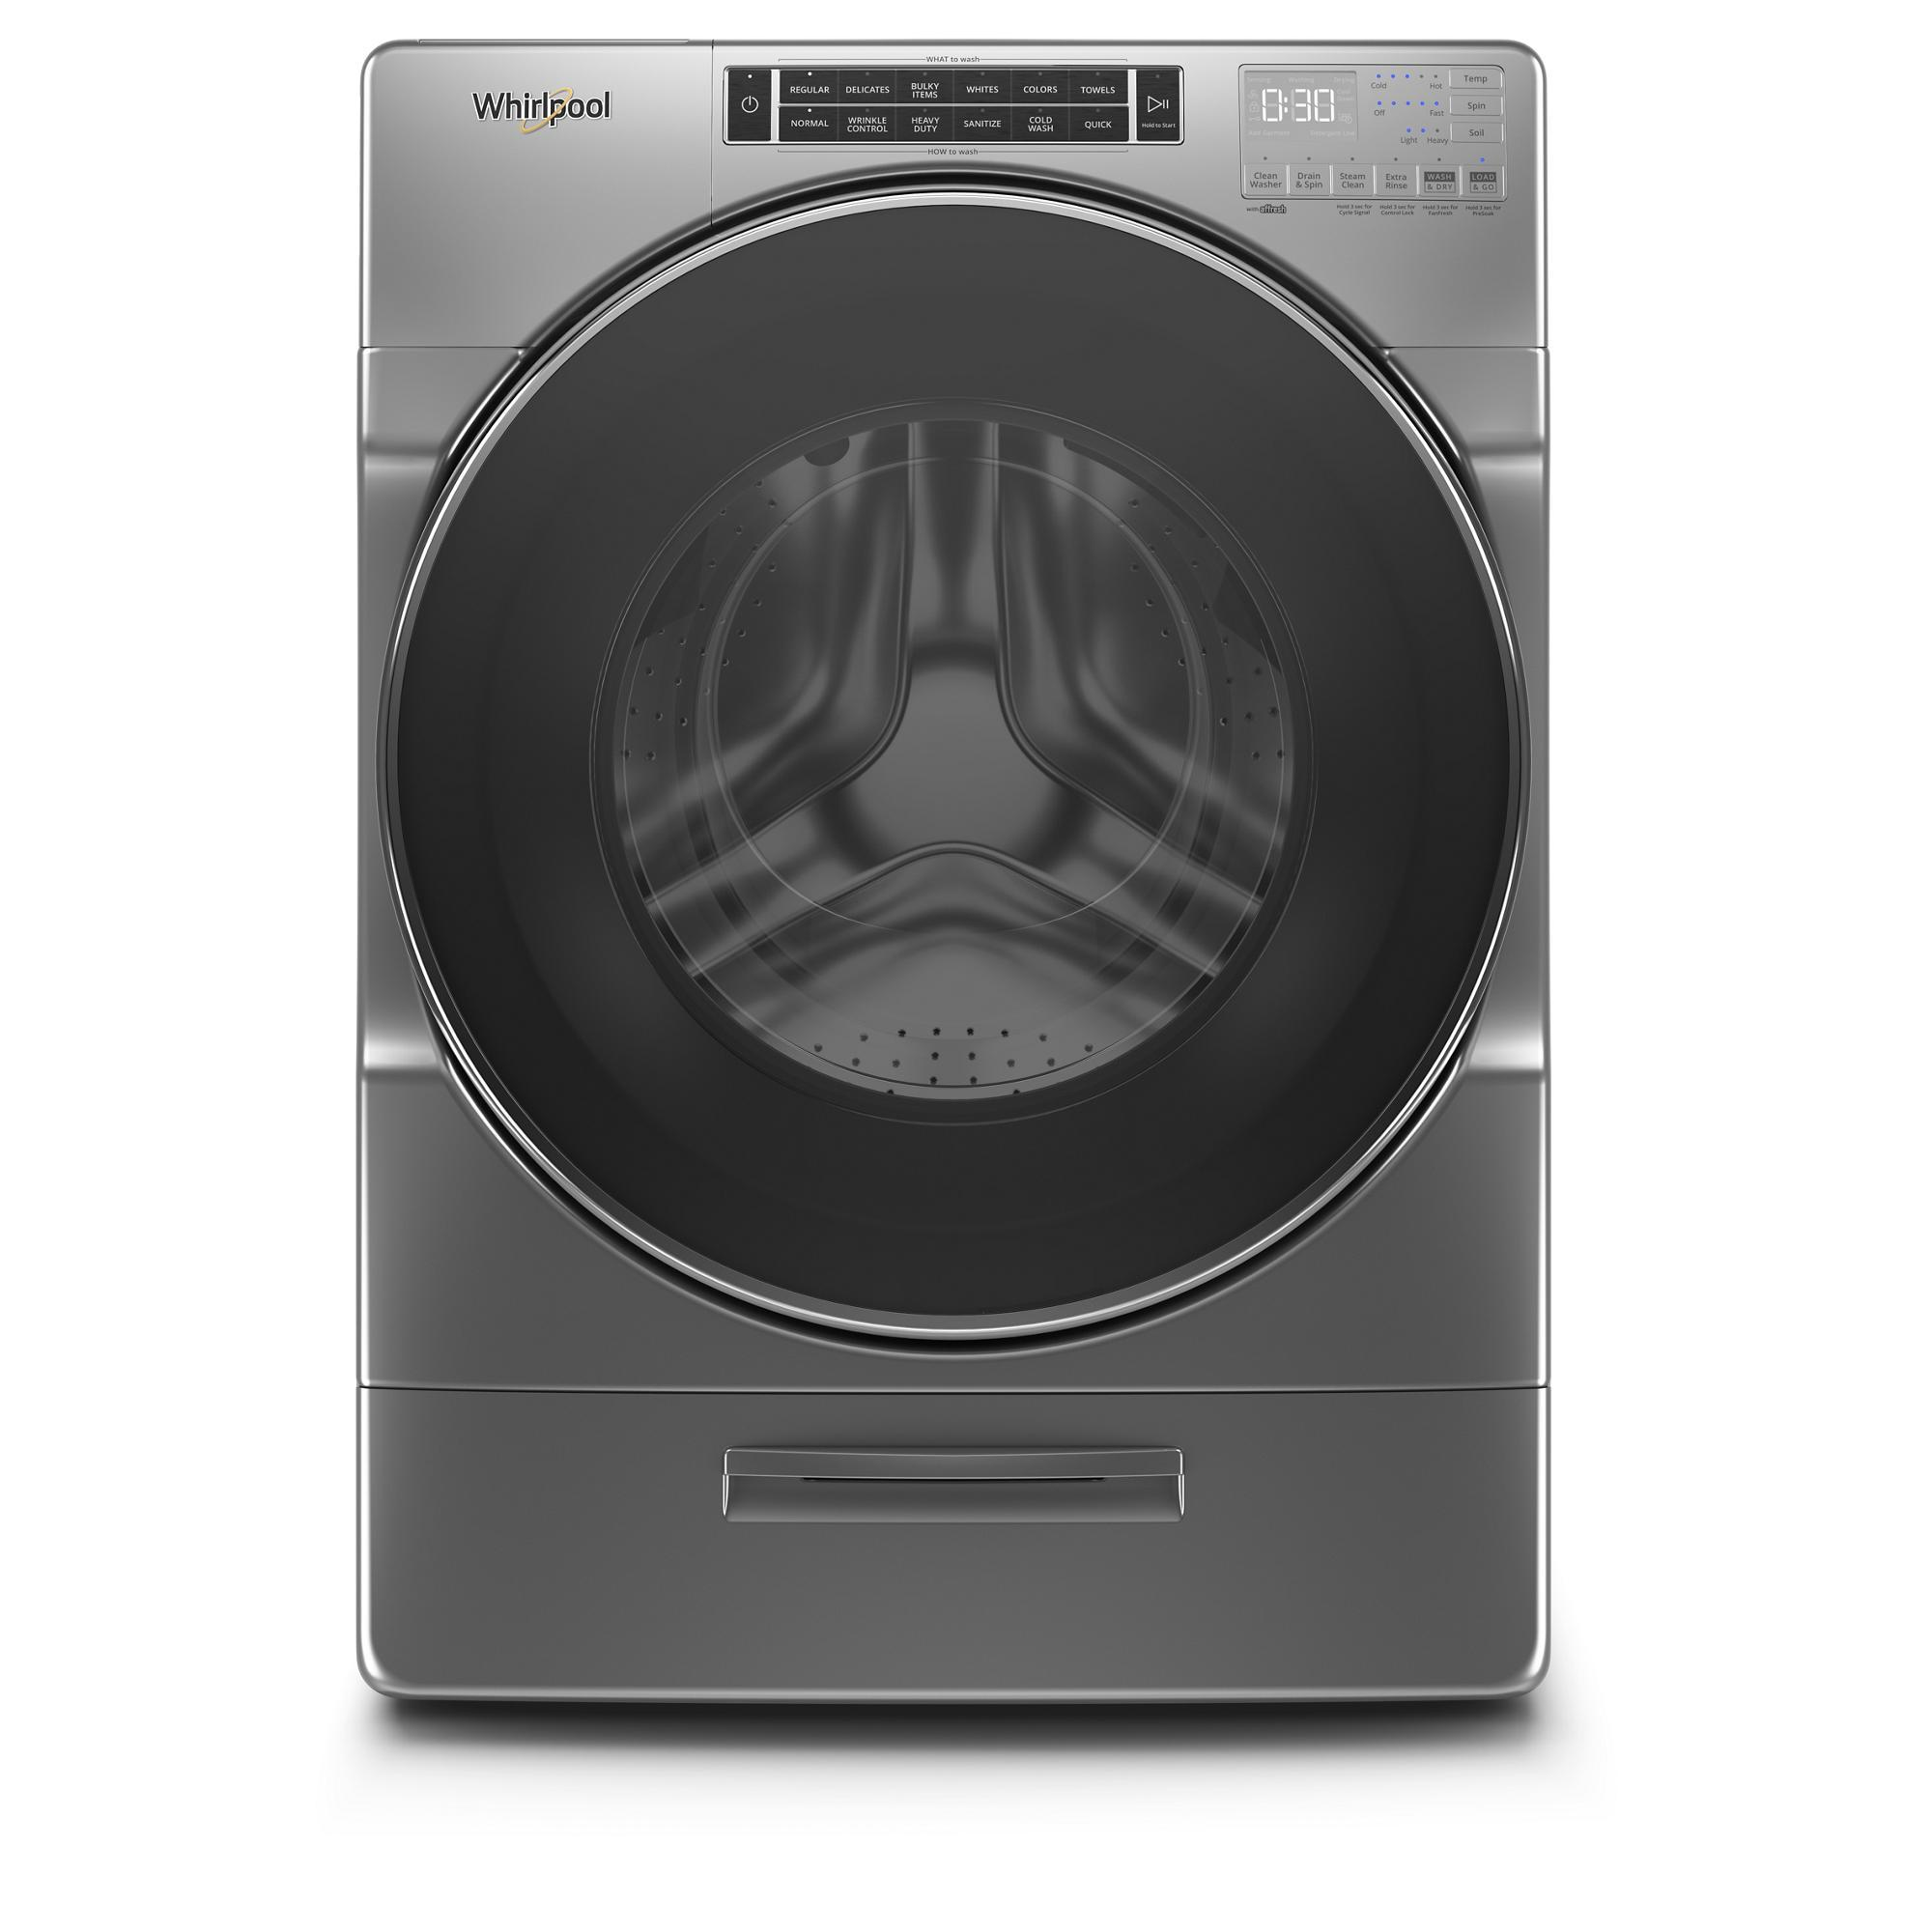 Wfw862chc Whirlpool Wfw862chc Front Load Tumble